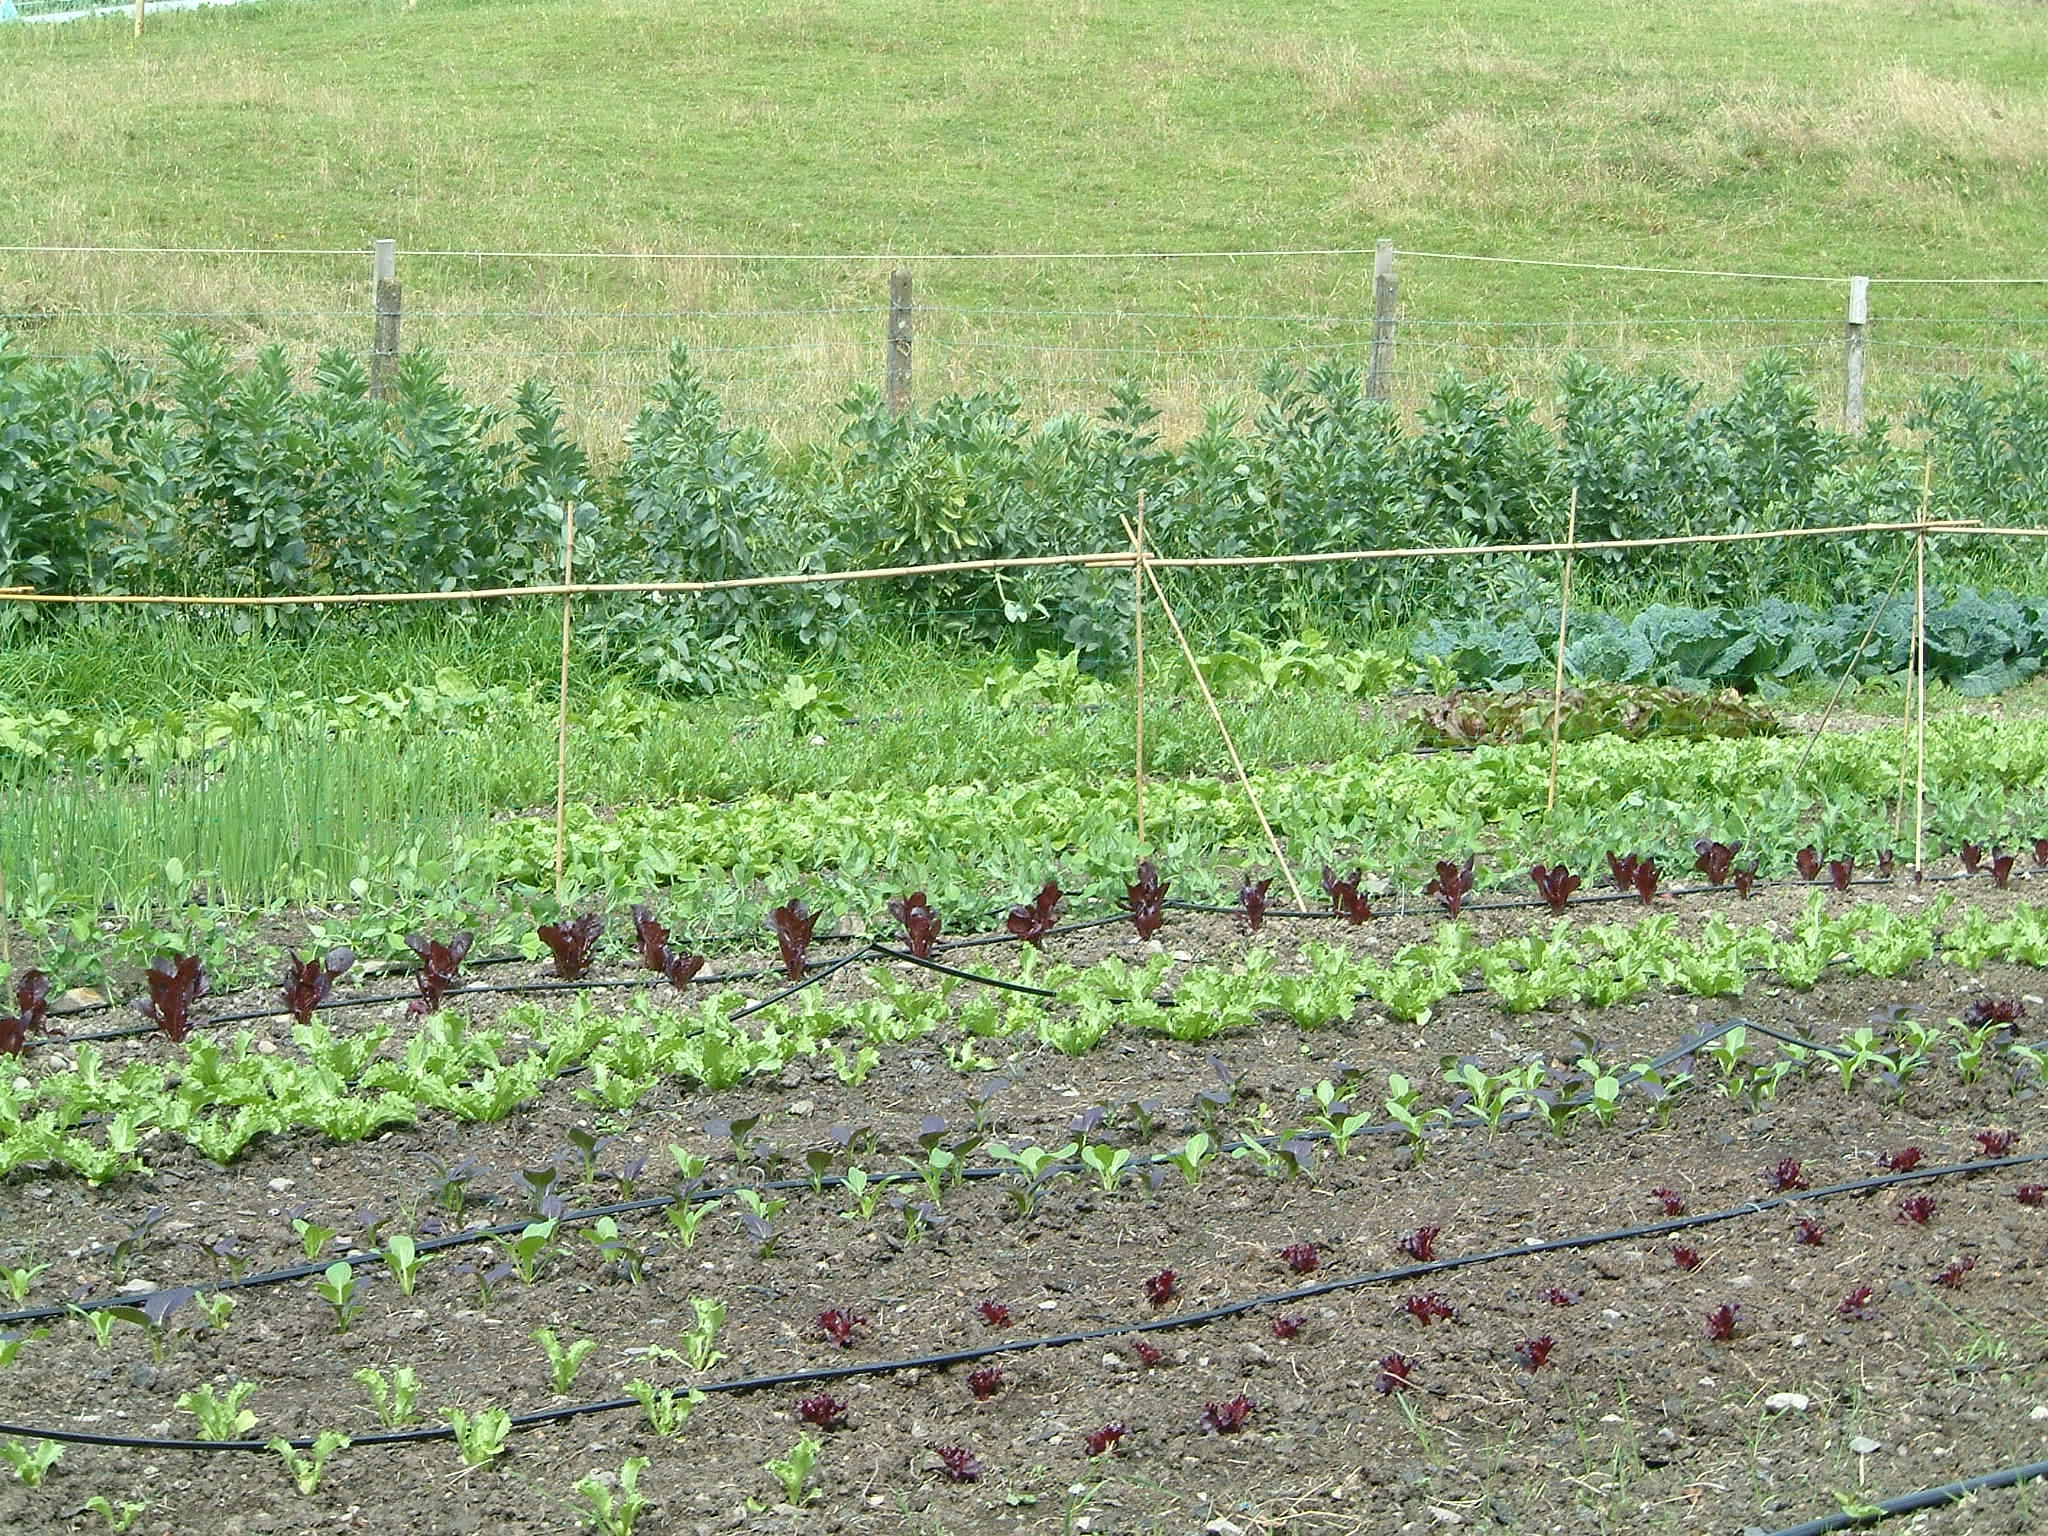 Village_veg_farmpics._20.7.09_028